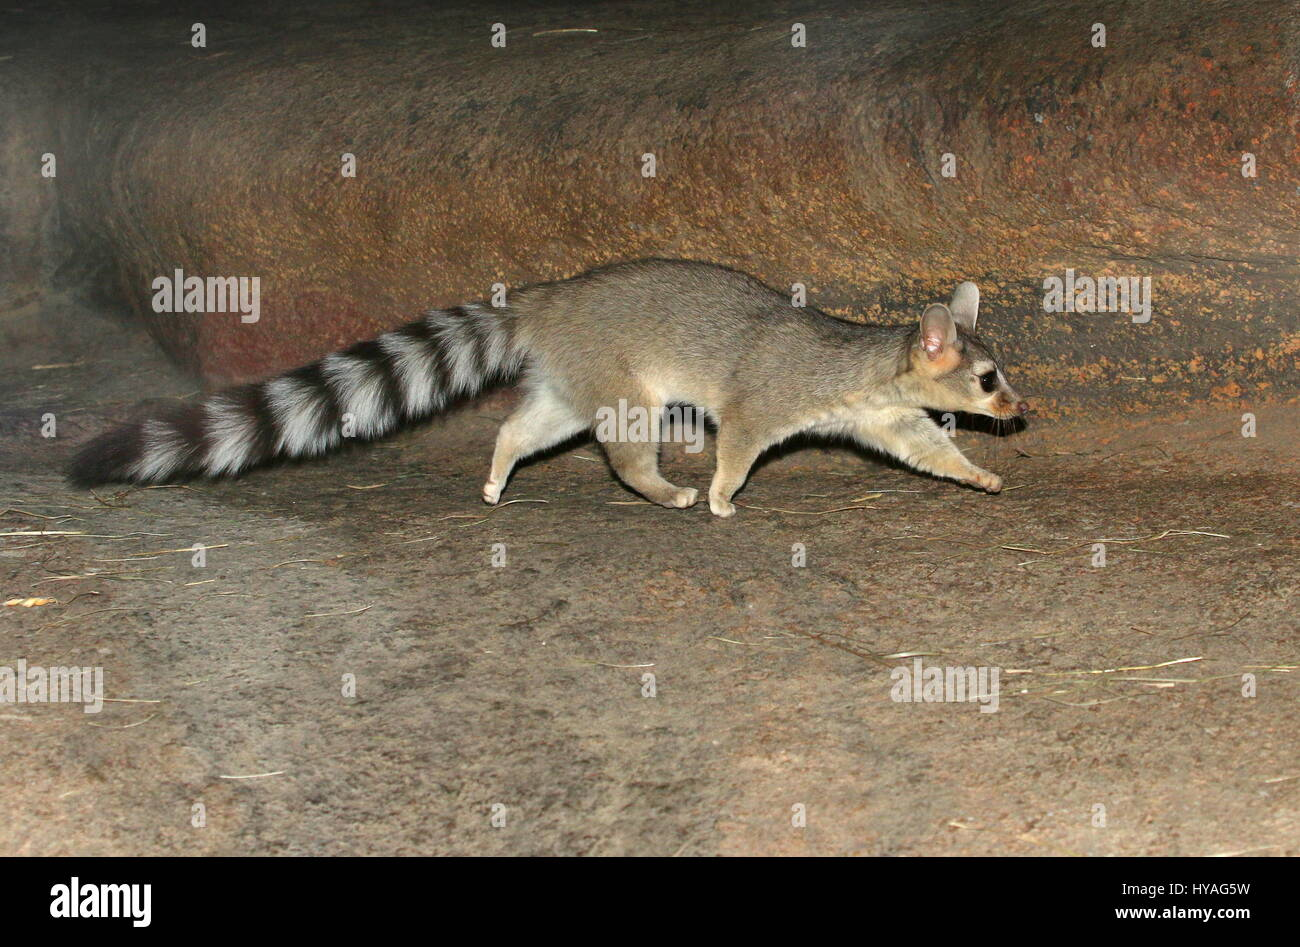 North American / Mexican Ring-tailed cat (Bassariscus astutus) on the prowl. - Stock Image